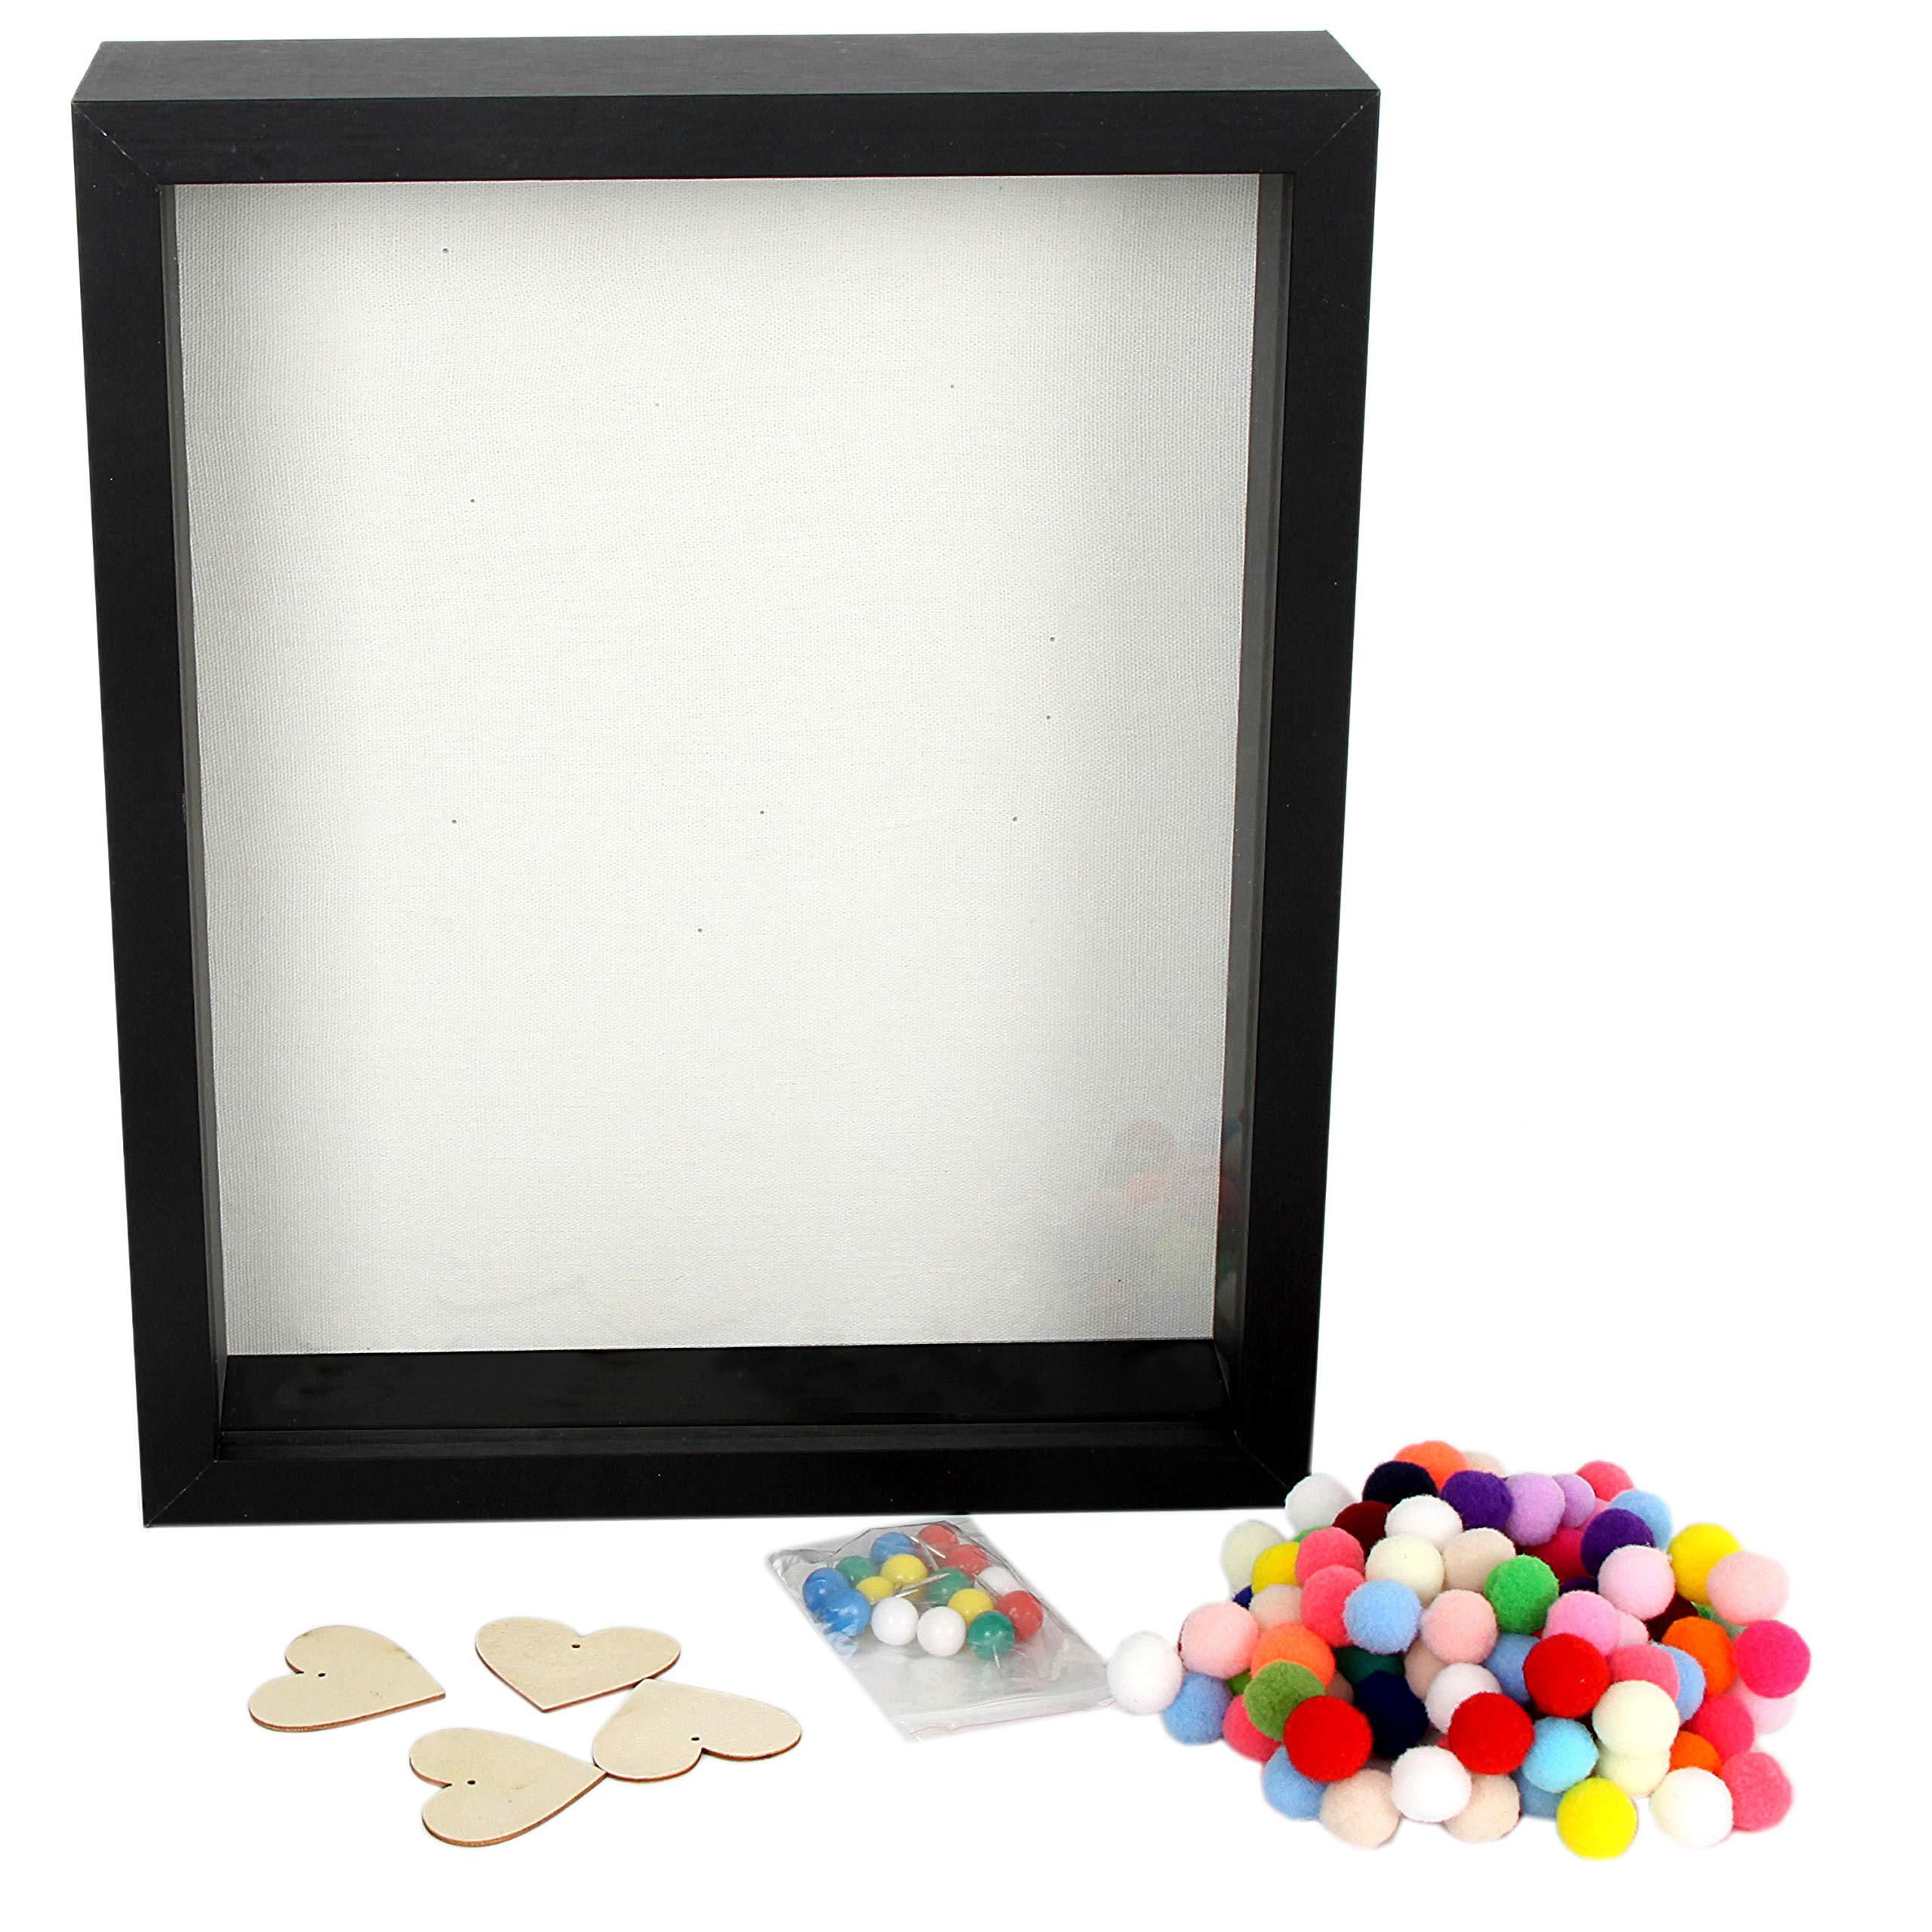 DiamondDec Premium Elegant Black 3-D Wooden Deep Shadow Box Frame - Shadow Box Memorabilia Frame & Soft Linen Back - Perfect for Displaying Photos, Tickets, Sports Items, More - 8 x 10 Shadow Box